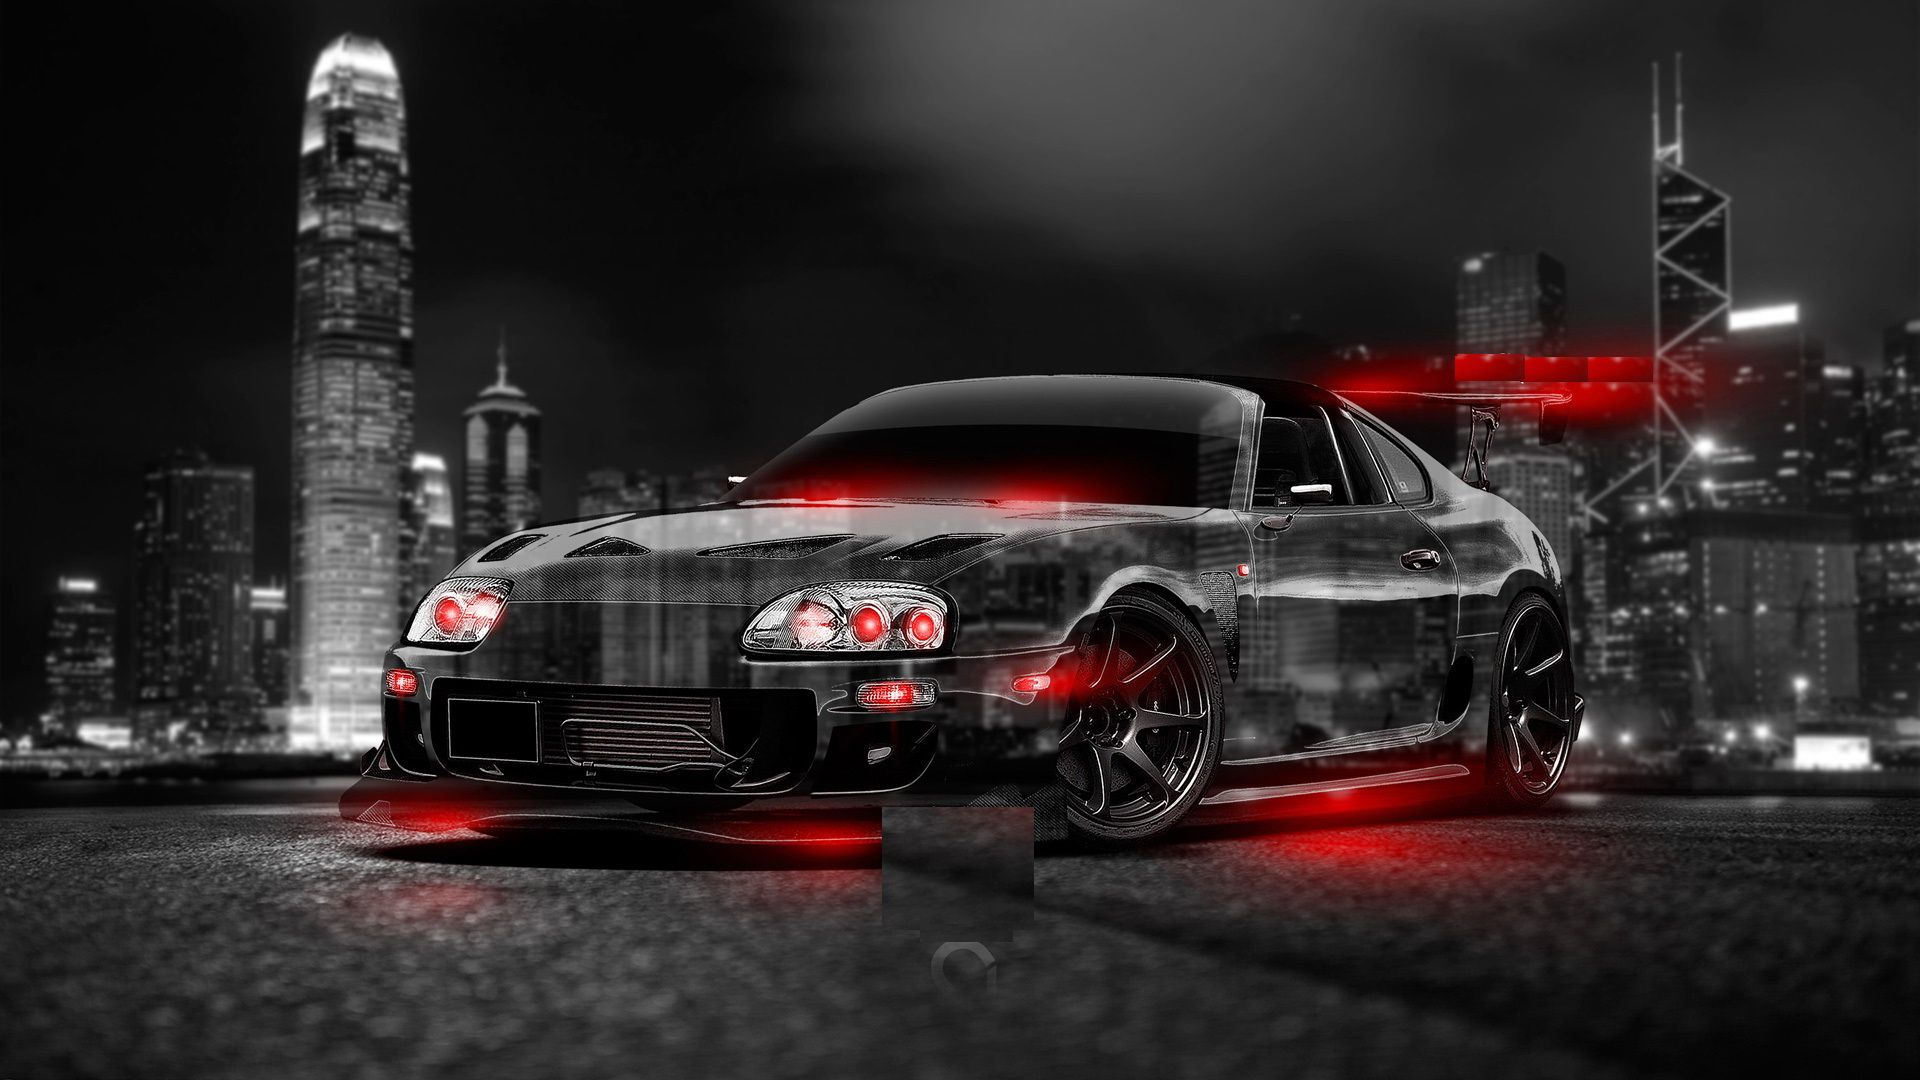 Abstract Toyota Supra HD Wallpaper | Projects To Try | Pinterest | Toyota  Supra, Toyota And Hd Wallpaper